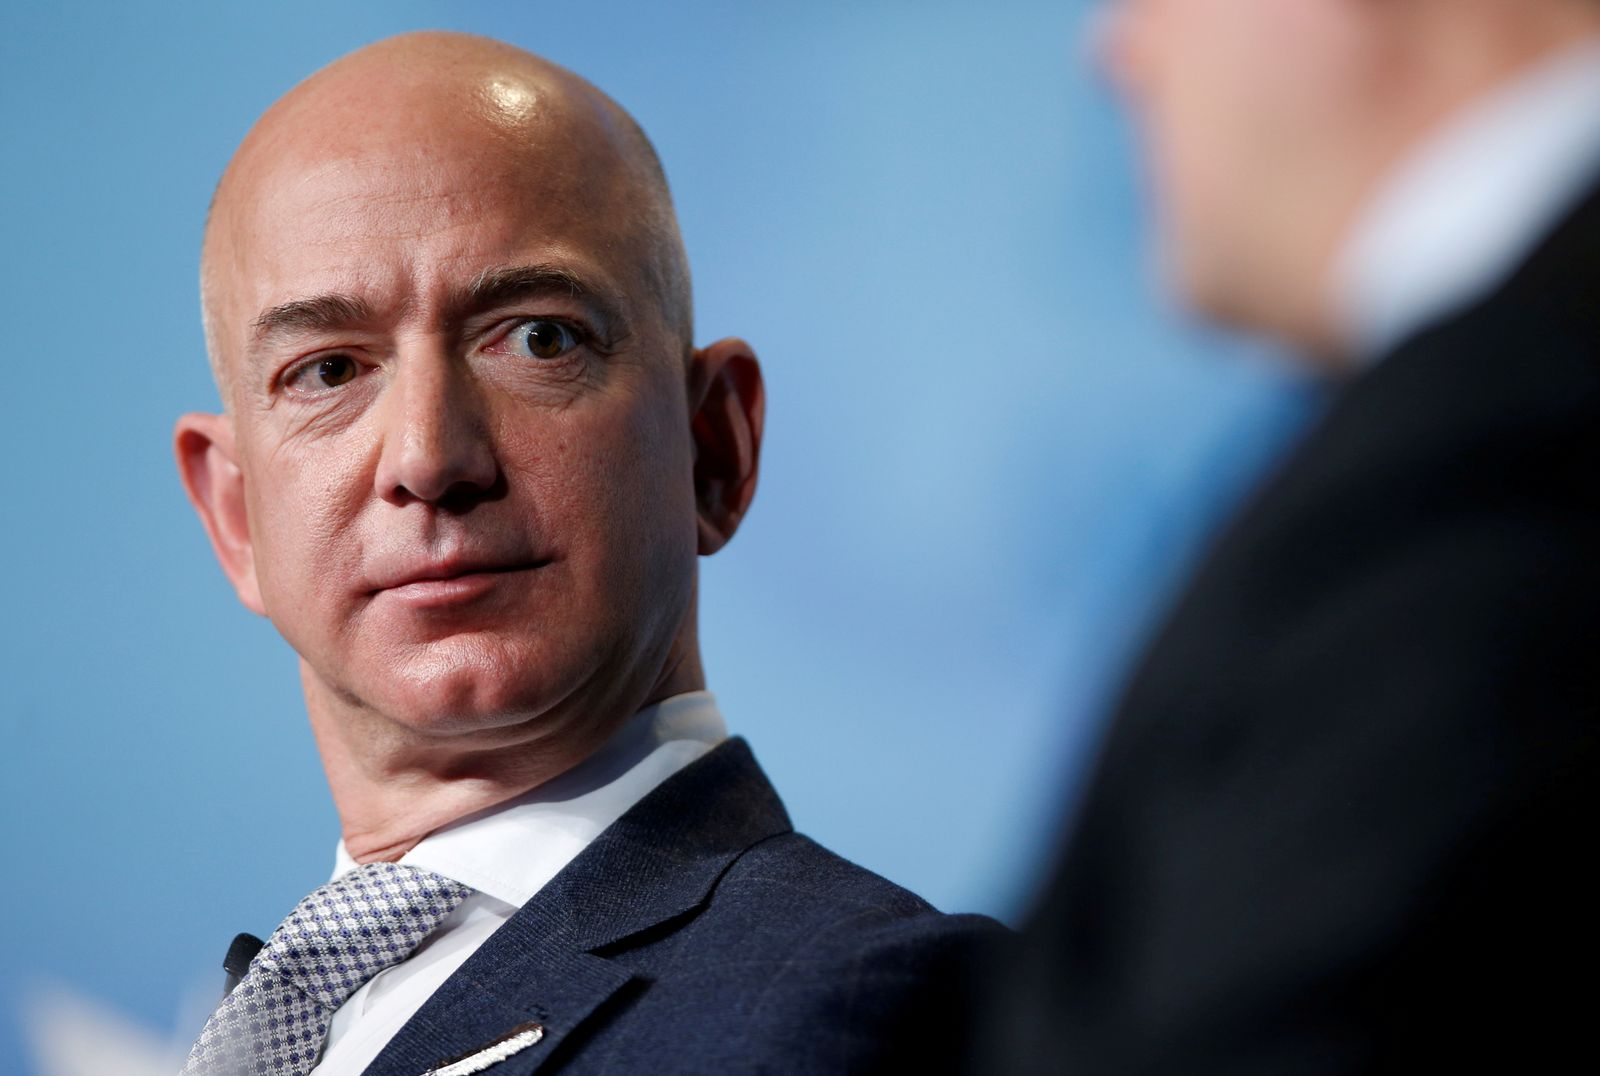 FILE PHOTO: Jeff Bezos, founder of Blue Origin and CEO of Amazon, speaks about the future plans of Blue Origin in Washington